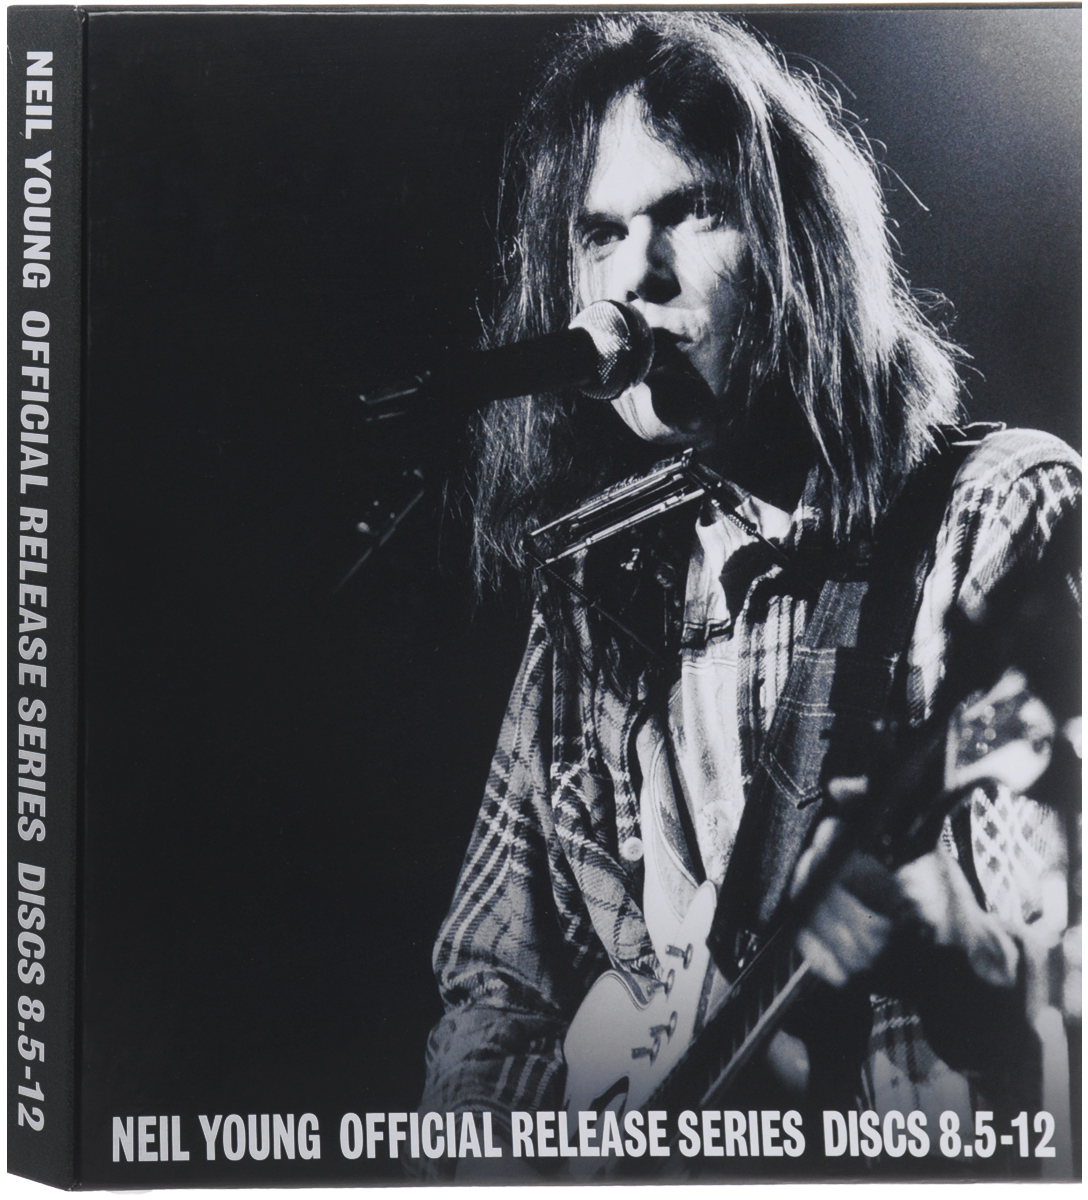 Neil Young. Official Release Series Discs 8.5-12. Numbered Limited Edition (6 LP)